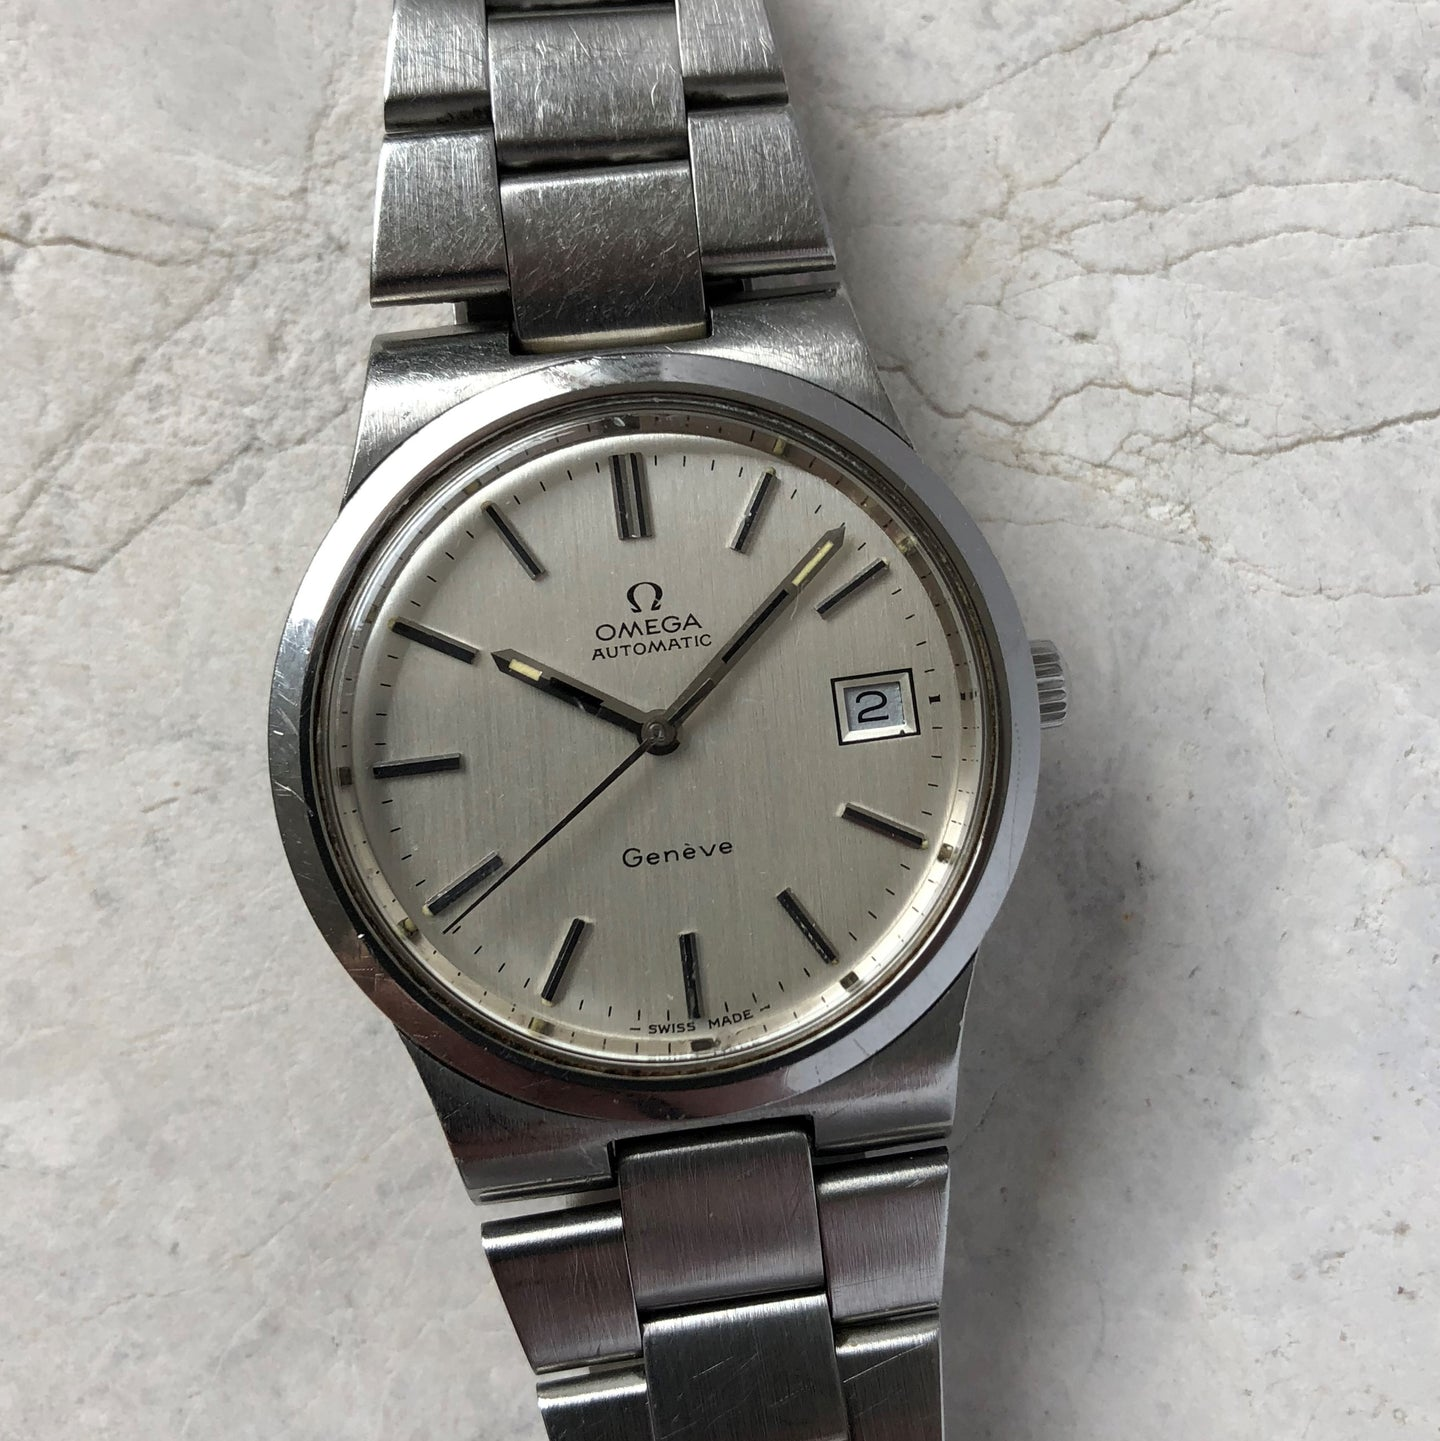 1970's steel Omega watch